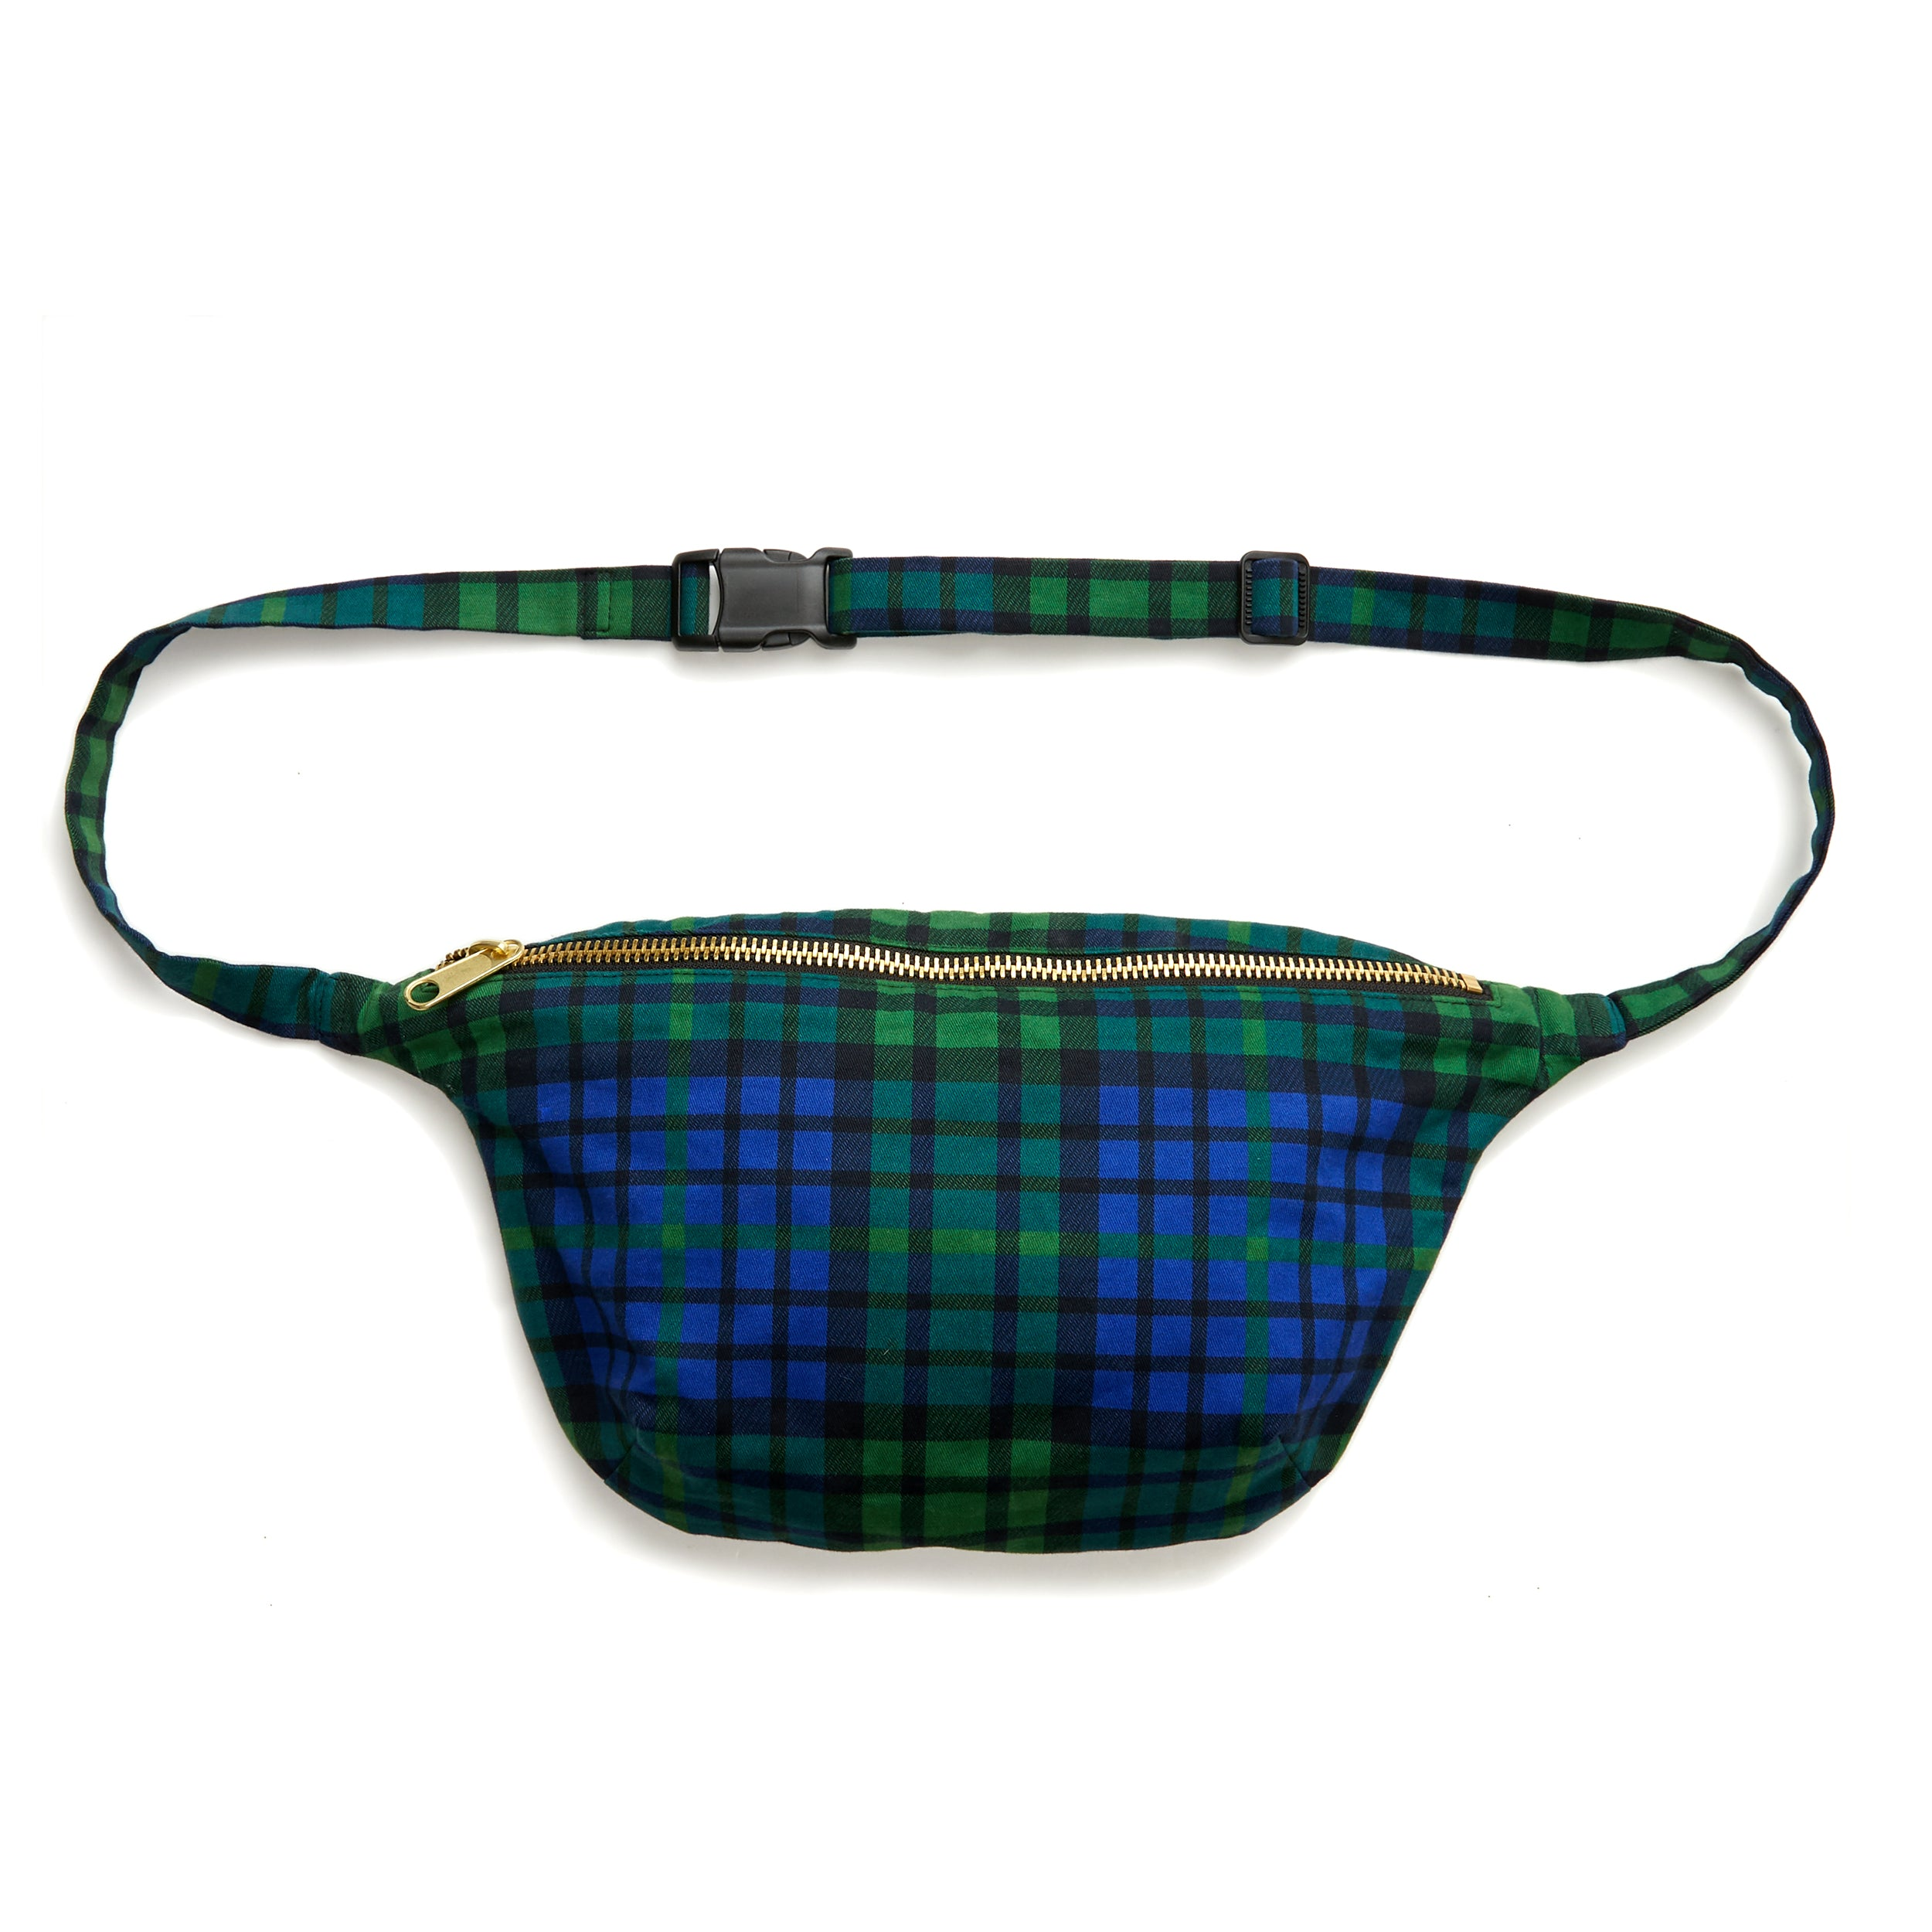 The Kumar Plaid Sling Bag